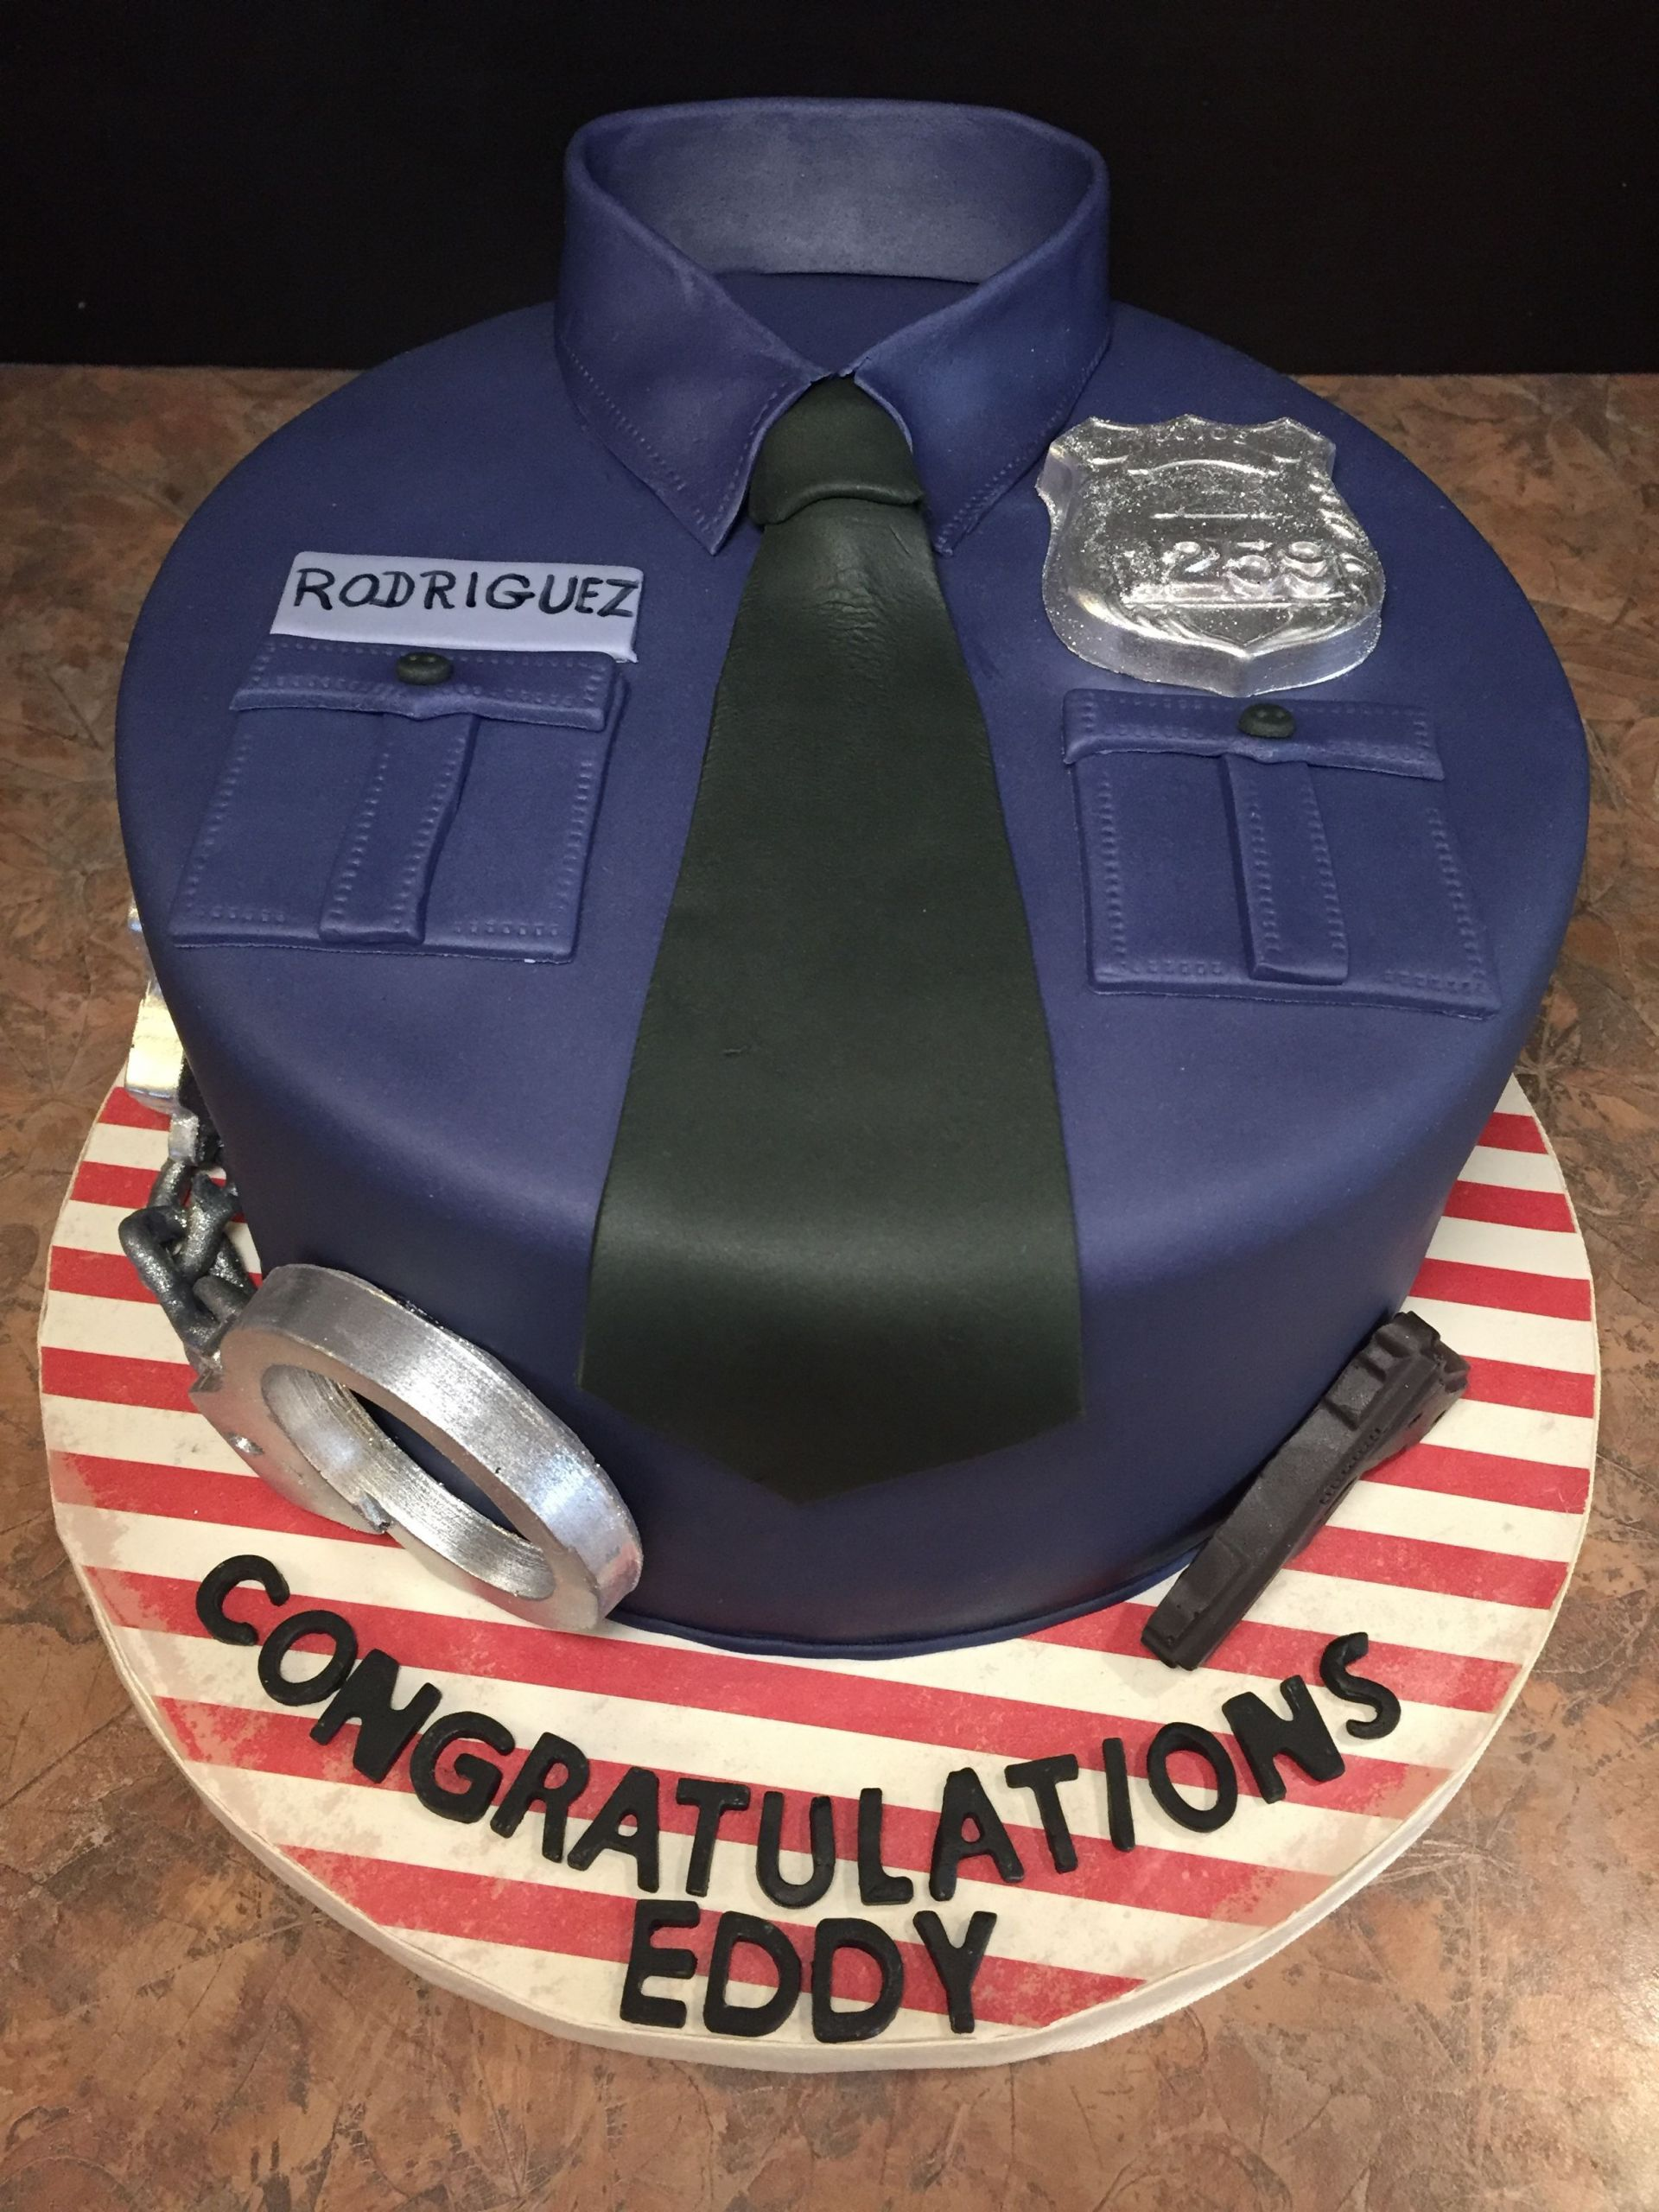 Police Academy Graduation Gift Ideas  Eddy s Police Academy Graduation White cake with